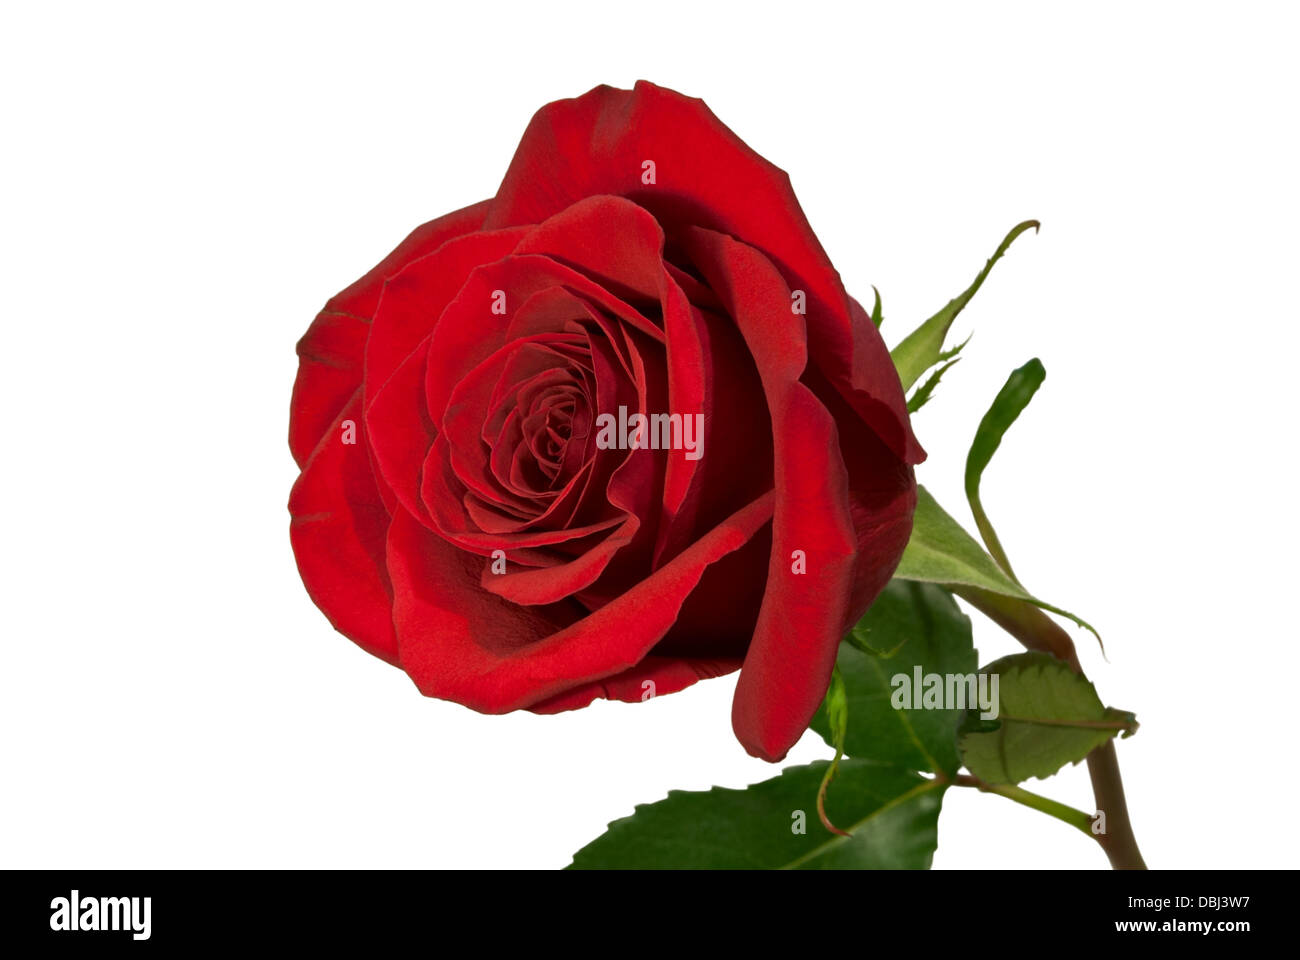 The photo shows a red rose, isolated on white background. - Stock Image